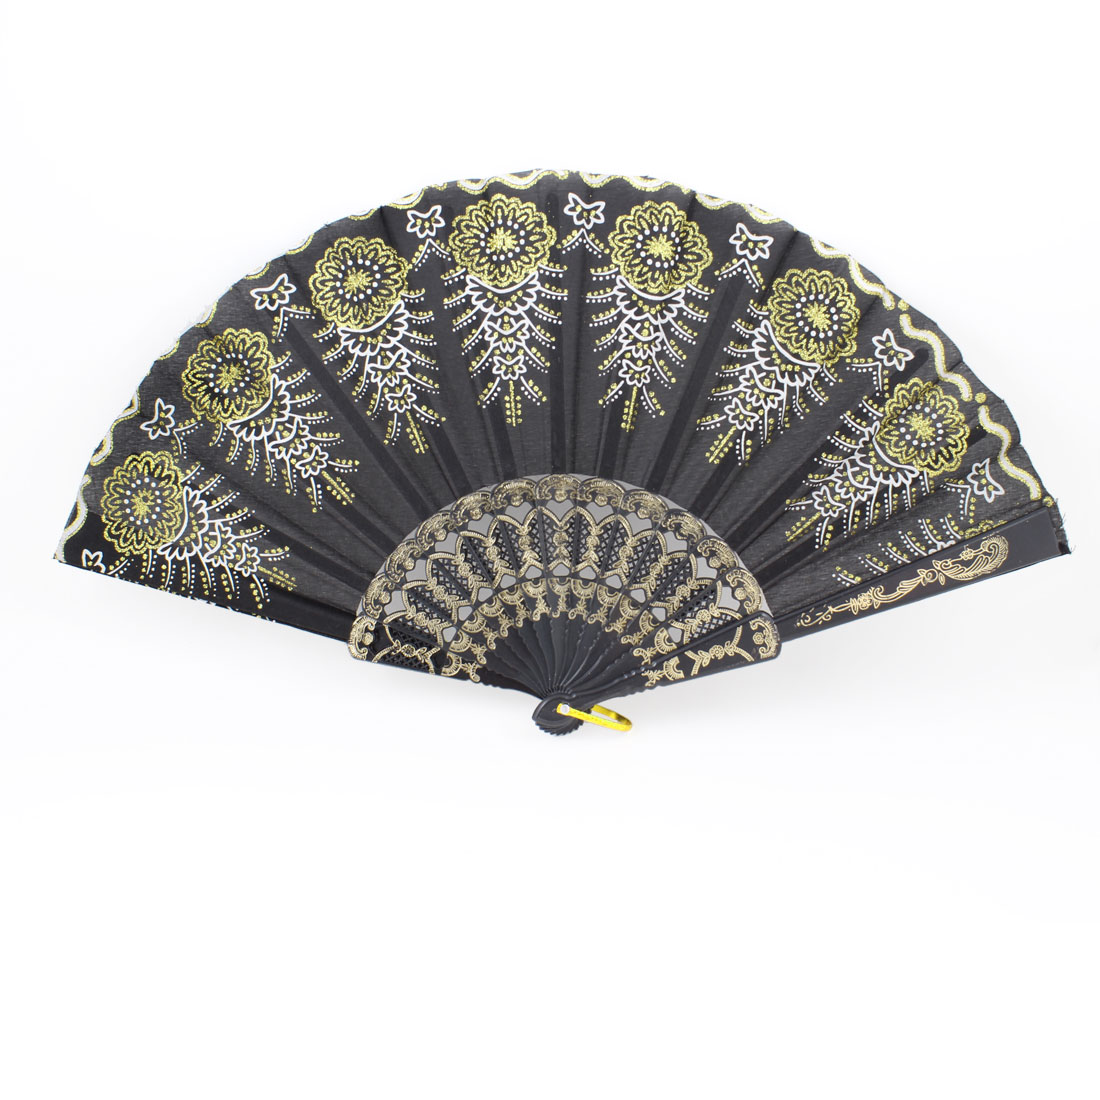 Gold Tone Flower Decor Nylon Black Plastic Folding Hand Fan w Metal Ring